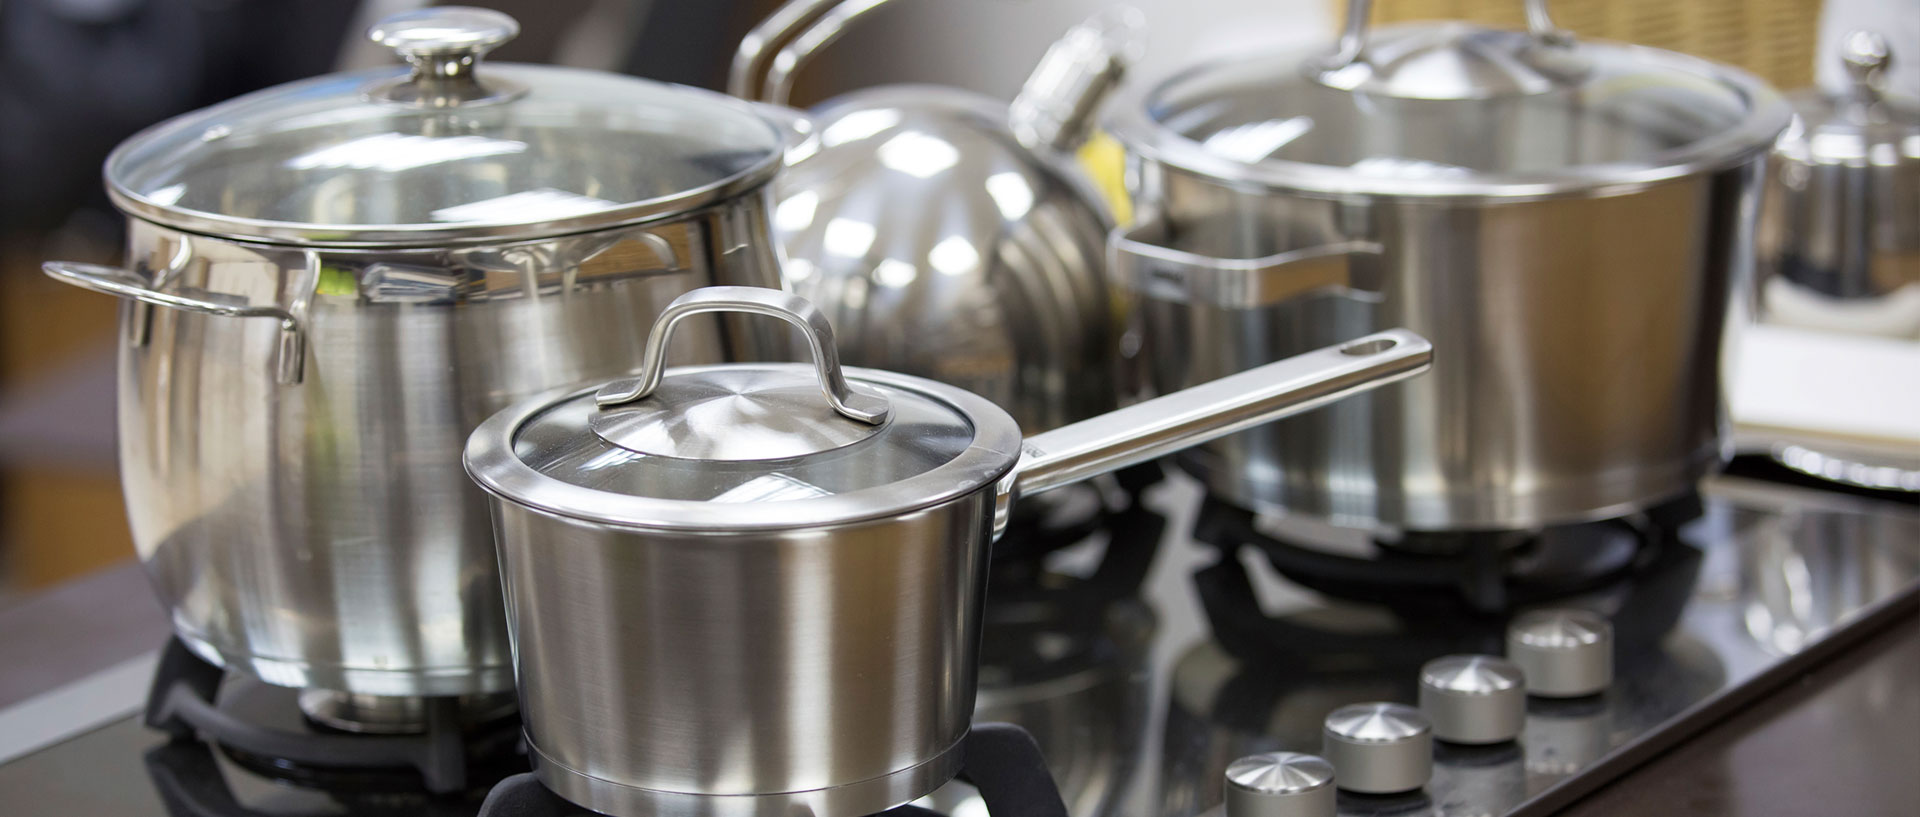 How To Care For Your New Cookware Consumer Reports